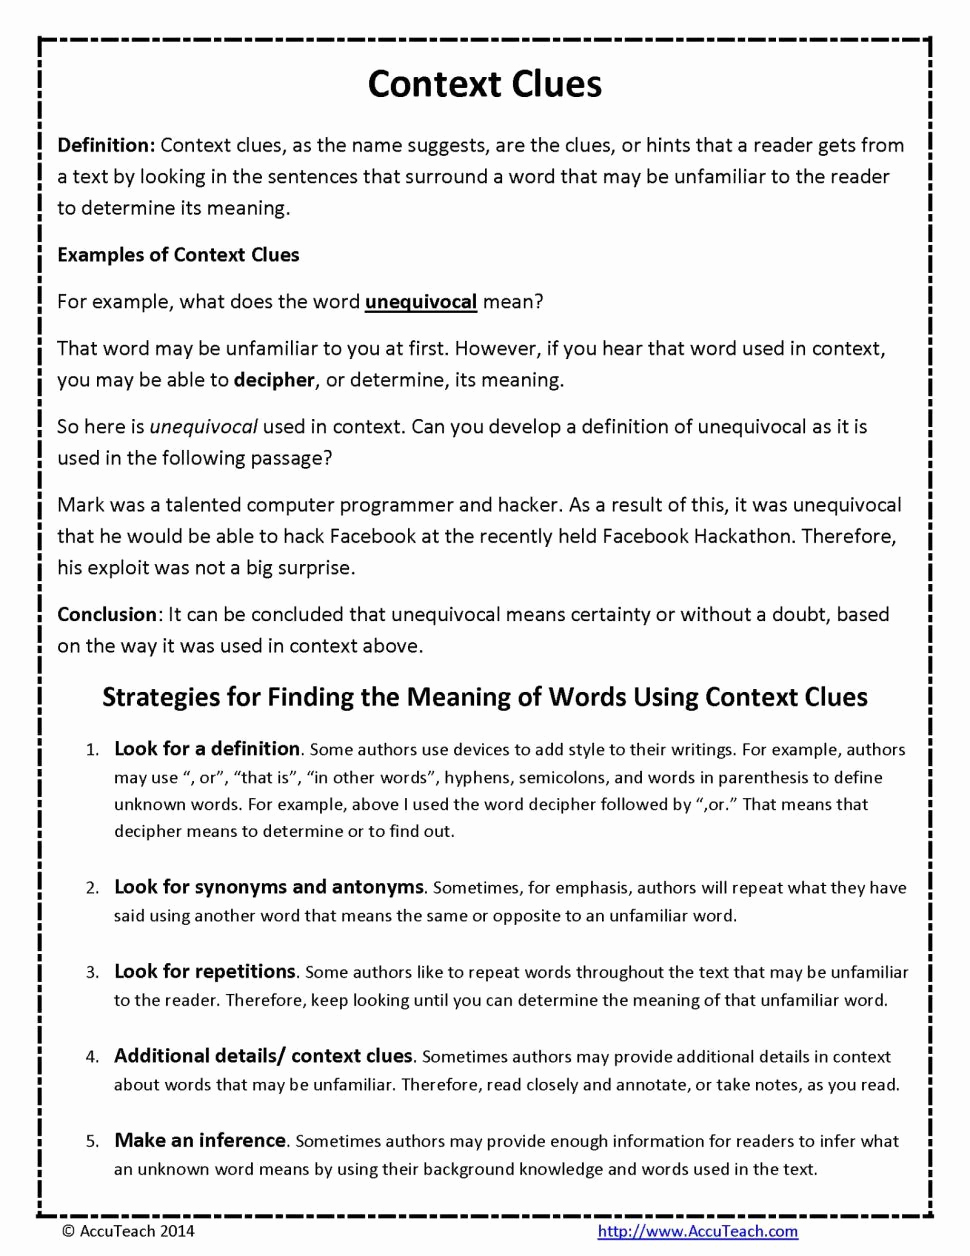 Context Clues Worksheets 1st Grade Awesome 1st Grade Reading Prehension Worksheets Education Fun